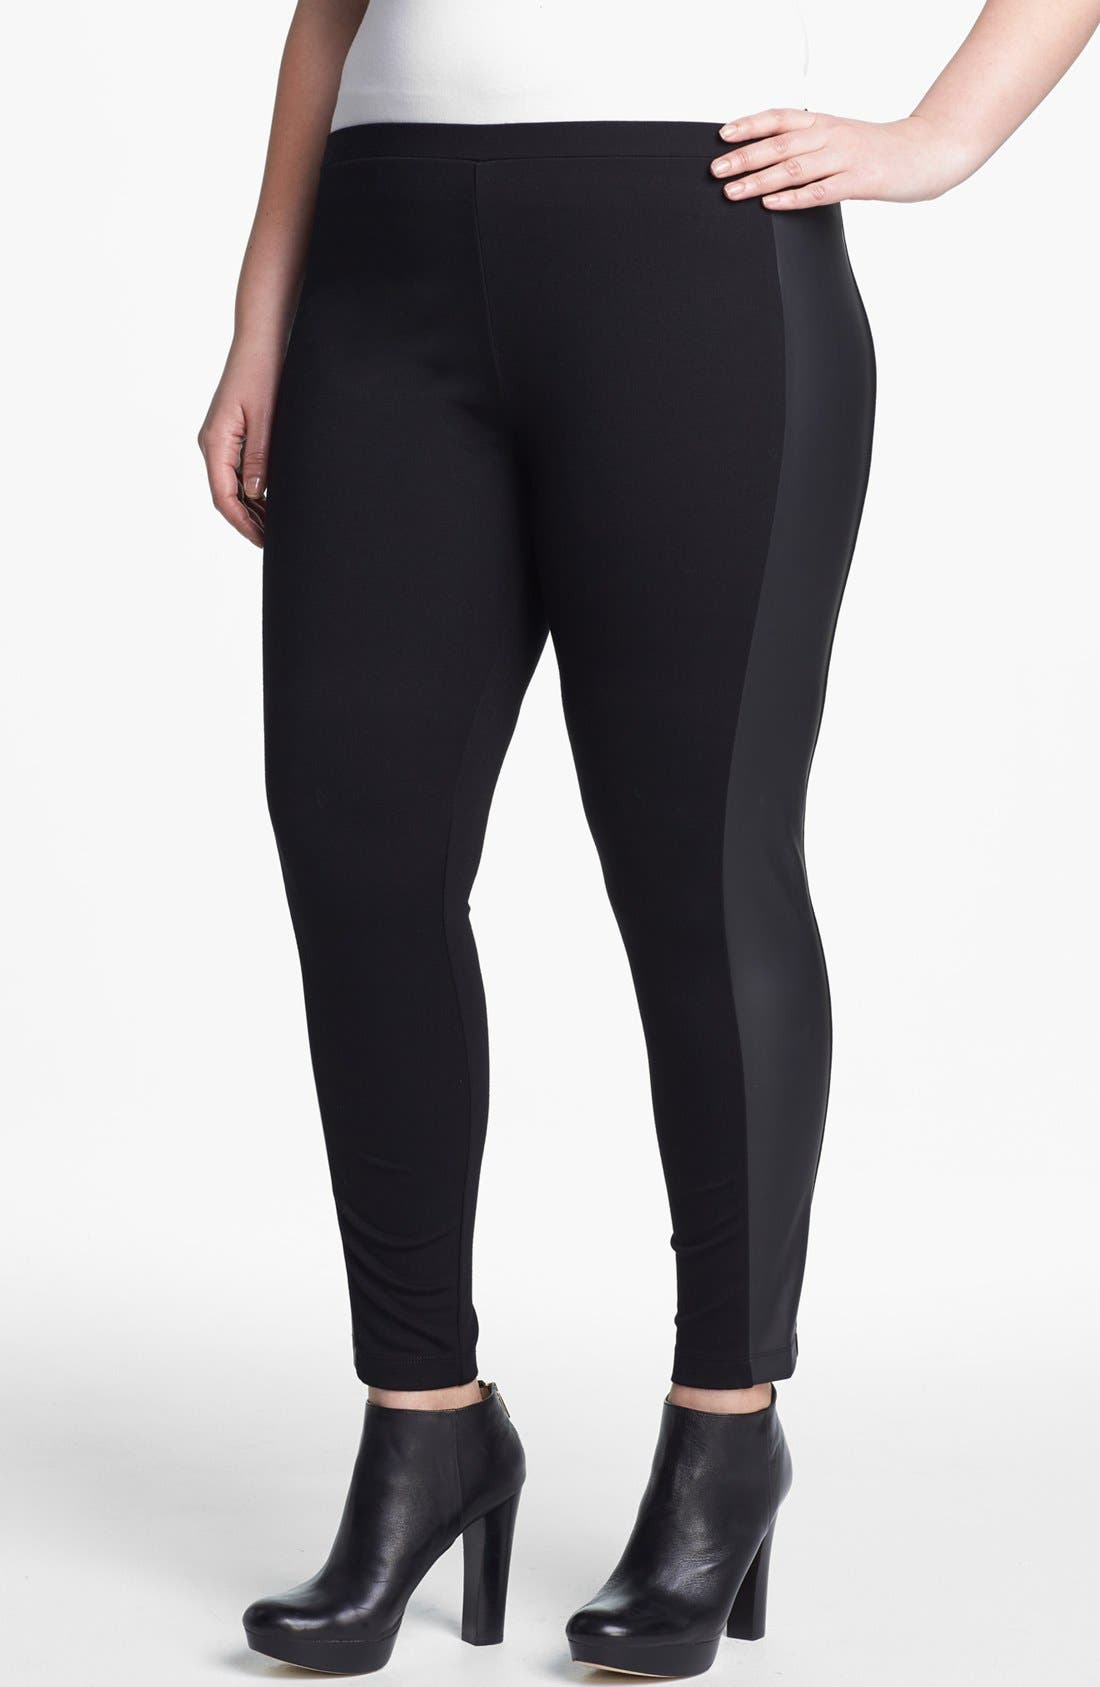 Main Image - Vince Camuto Faux Leather Trim Leggings (Plus Size)